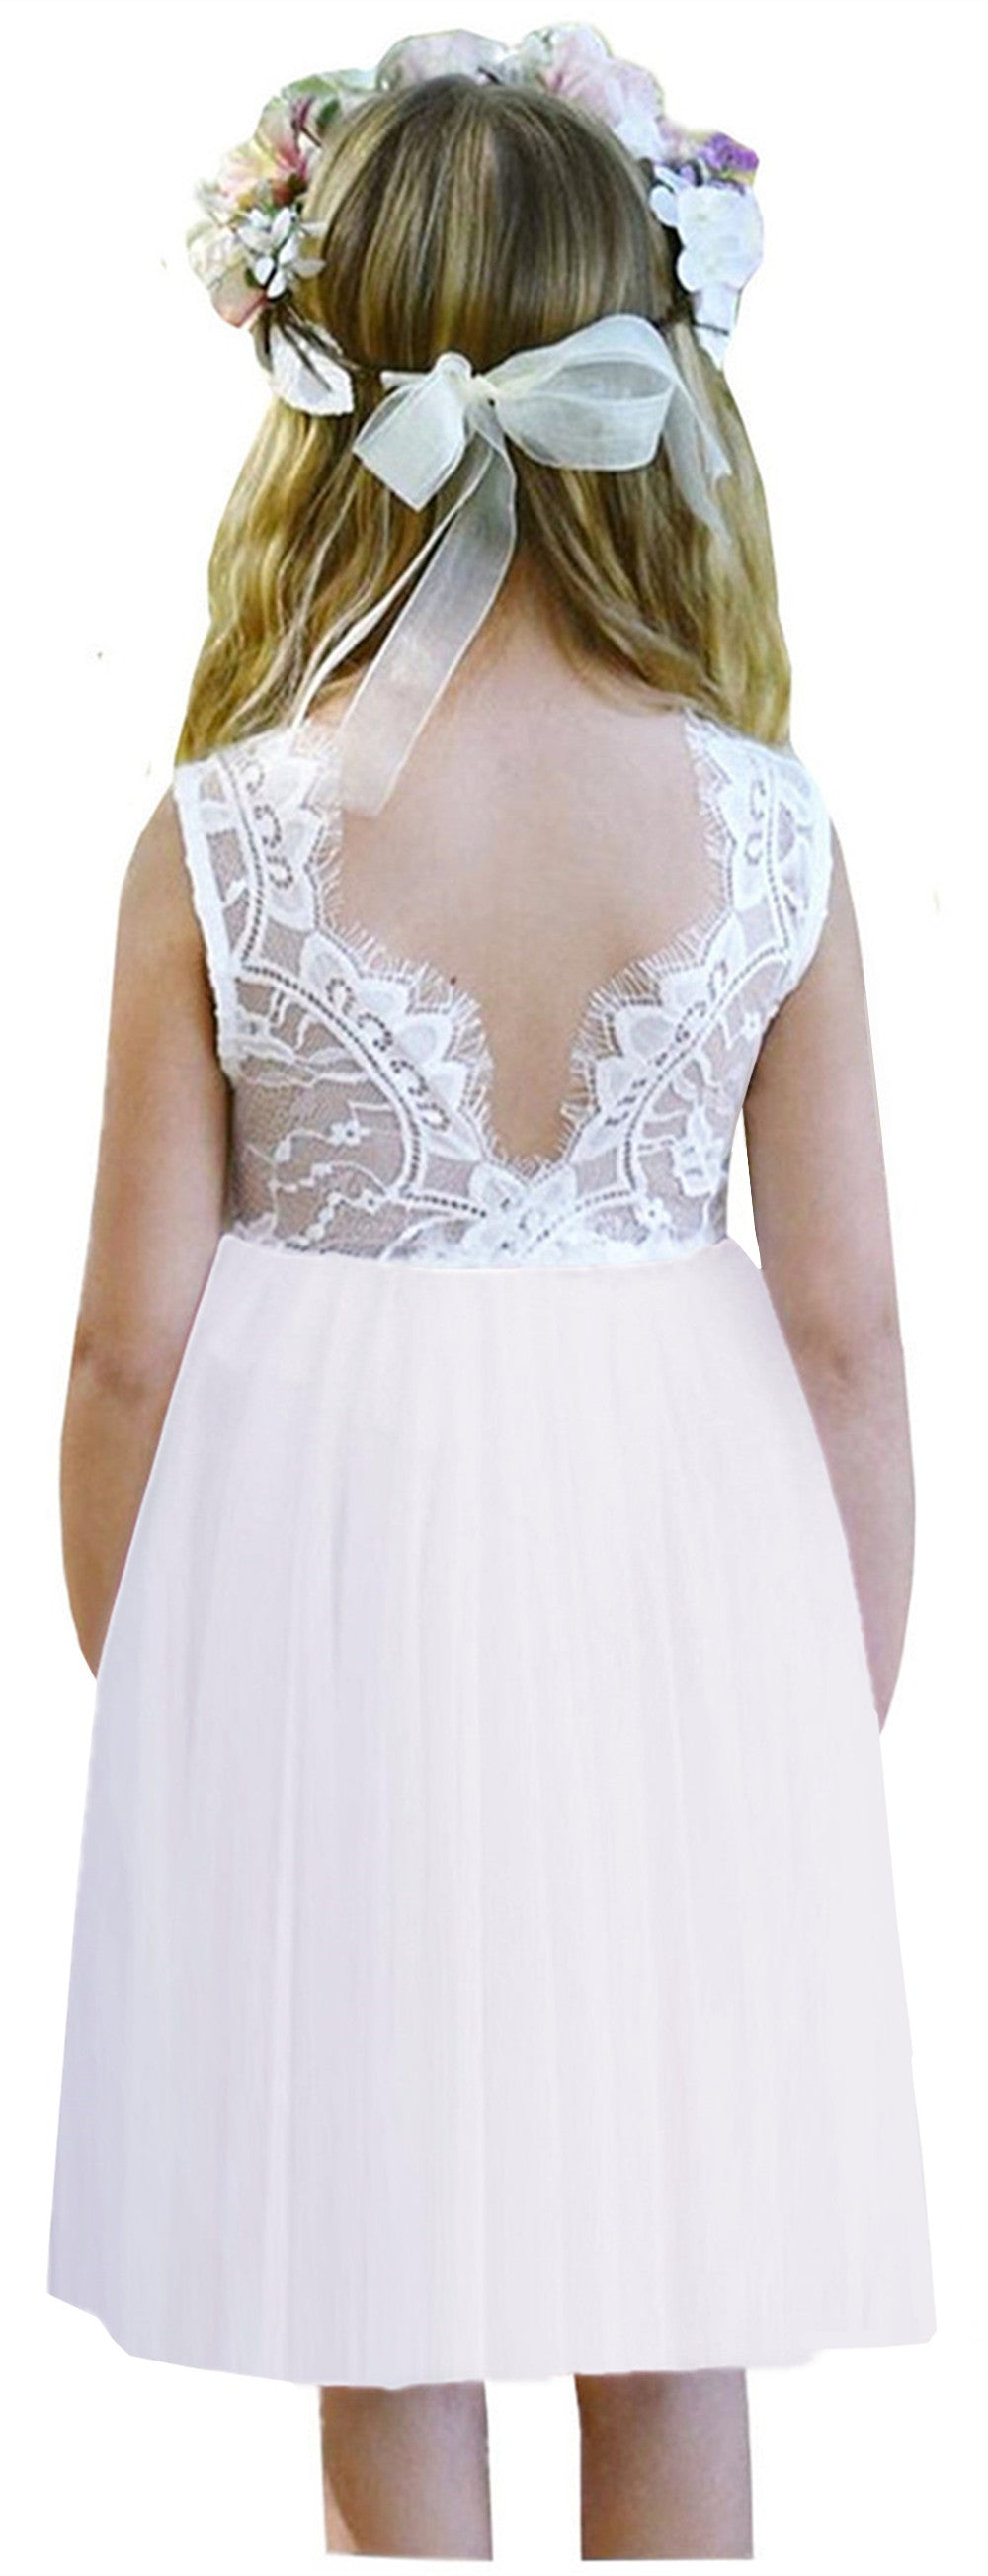 2BUNNIES Girl Rose Lace Back Sleeveless Knee Straight Dress (White)